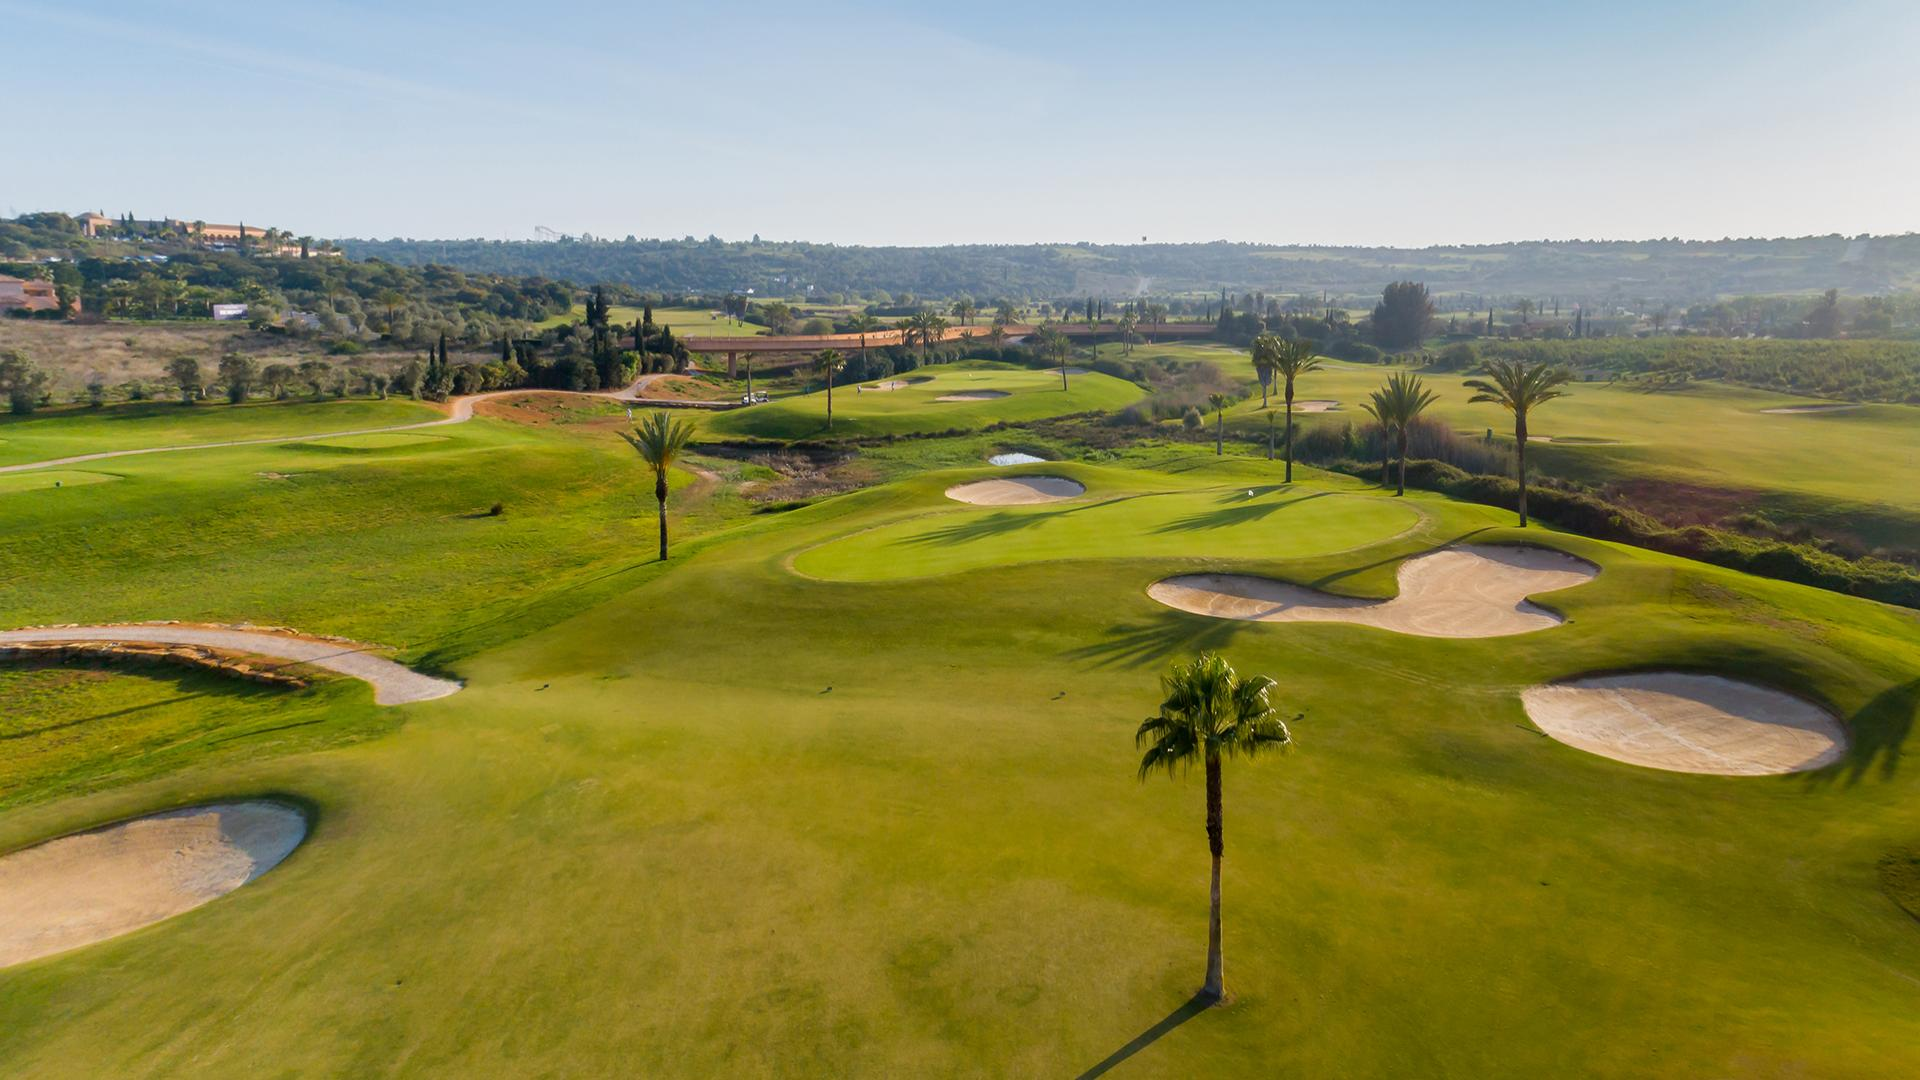 Top 10 Best Golf Resorts in Portugal